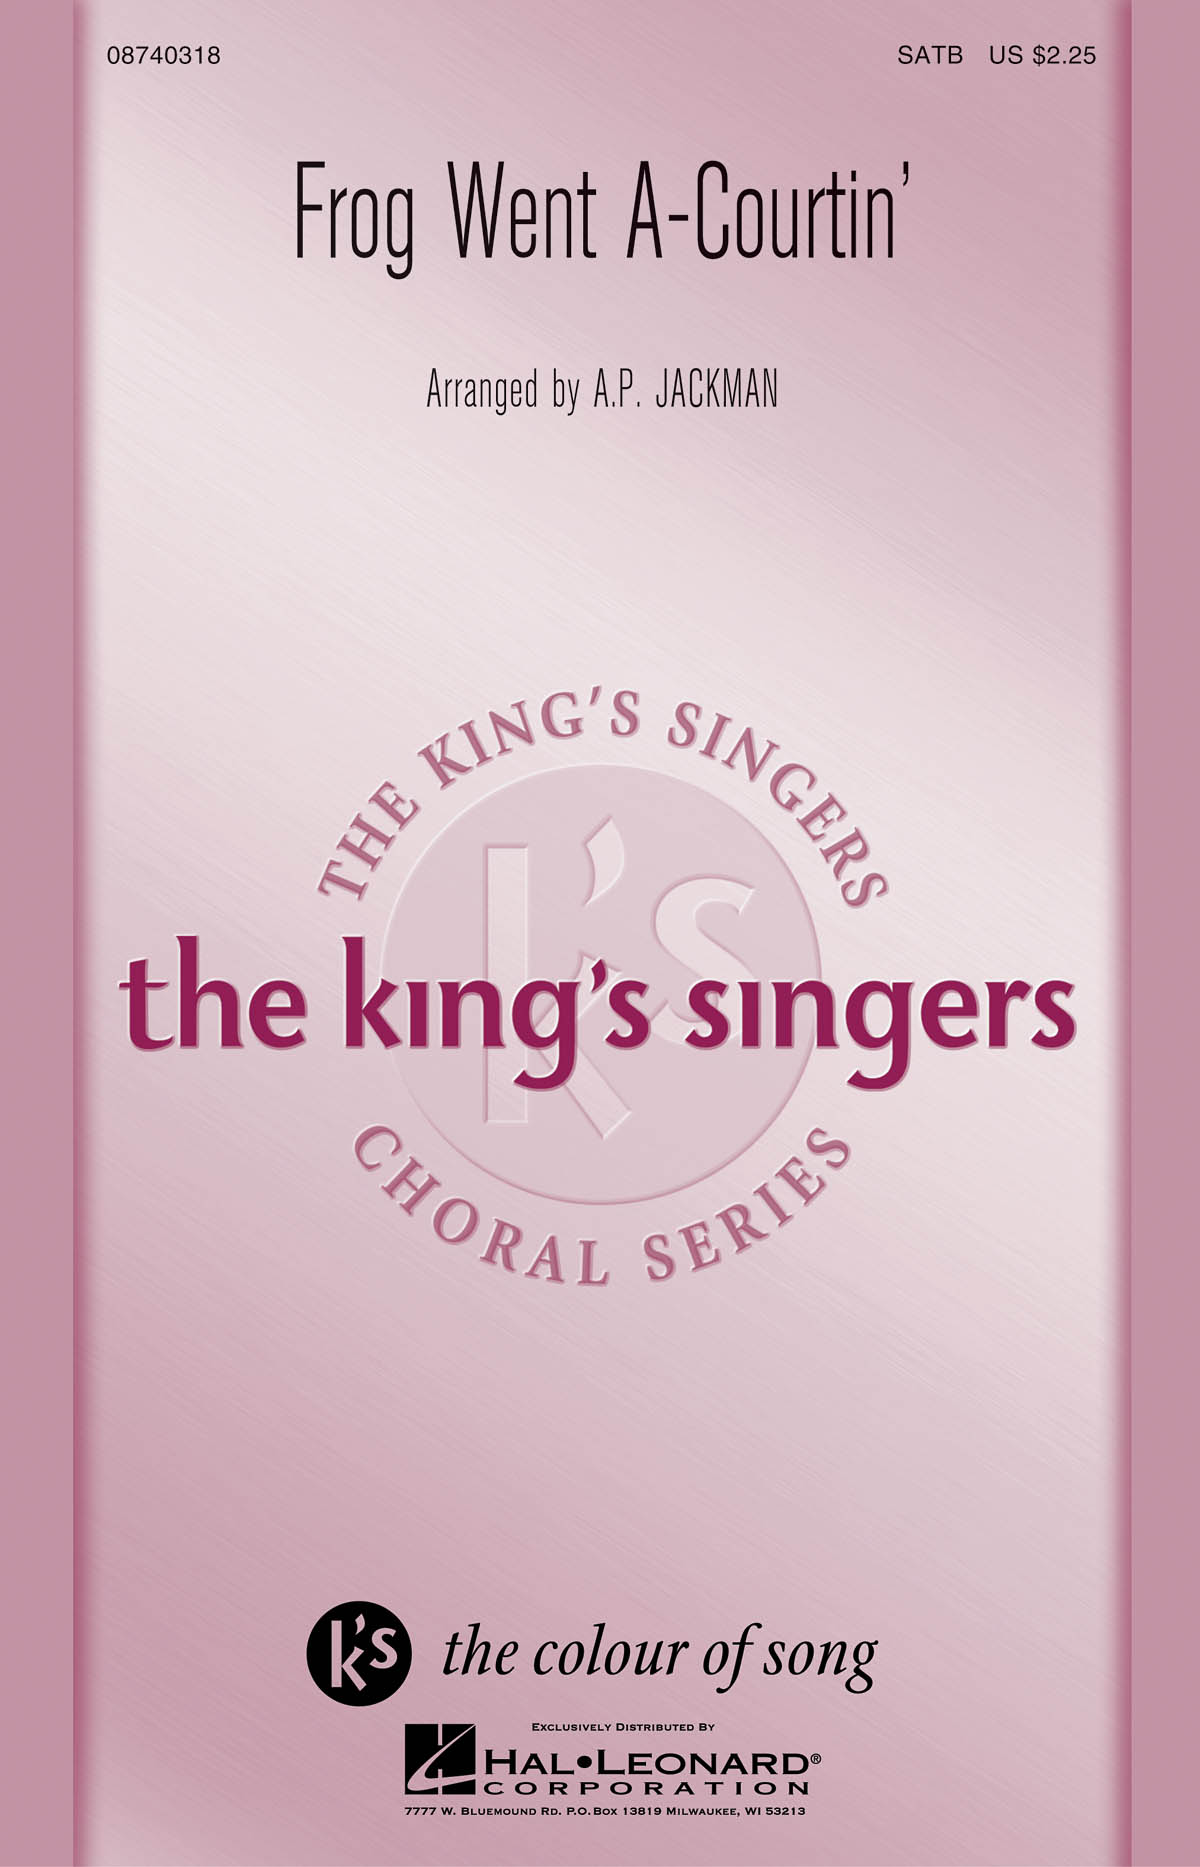 The King's Singers: Frog Went A-Courtin': SATB: Vocal Score